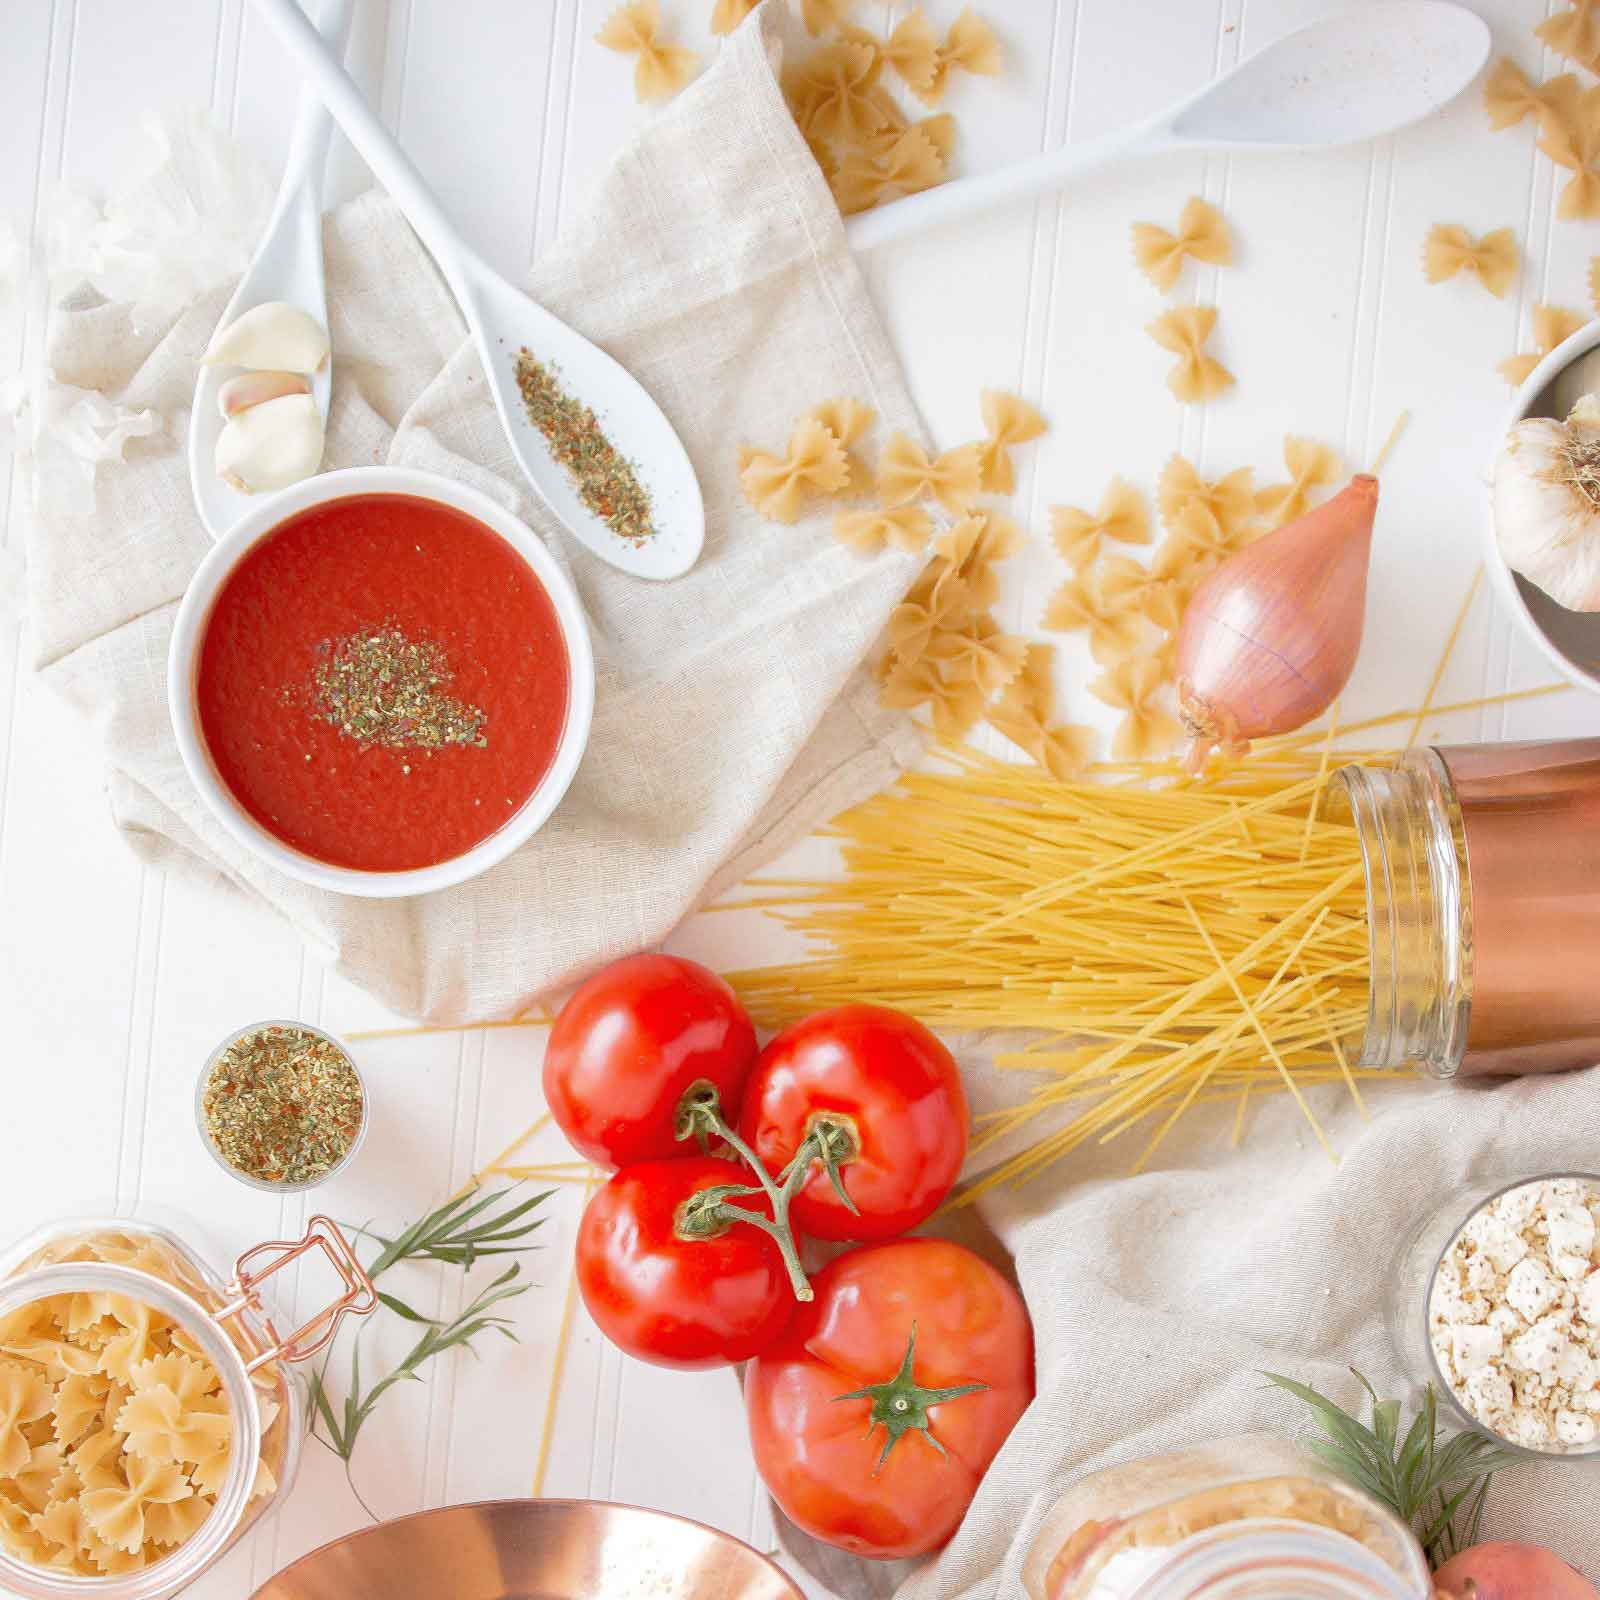 Pasta ingredients covering a cloth